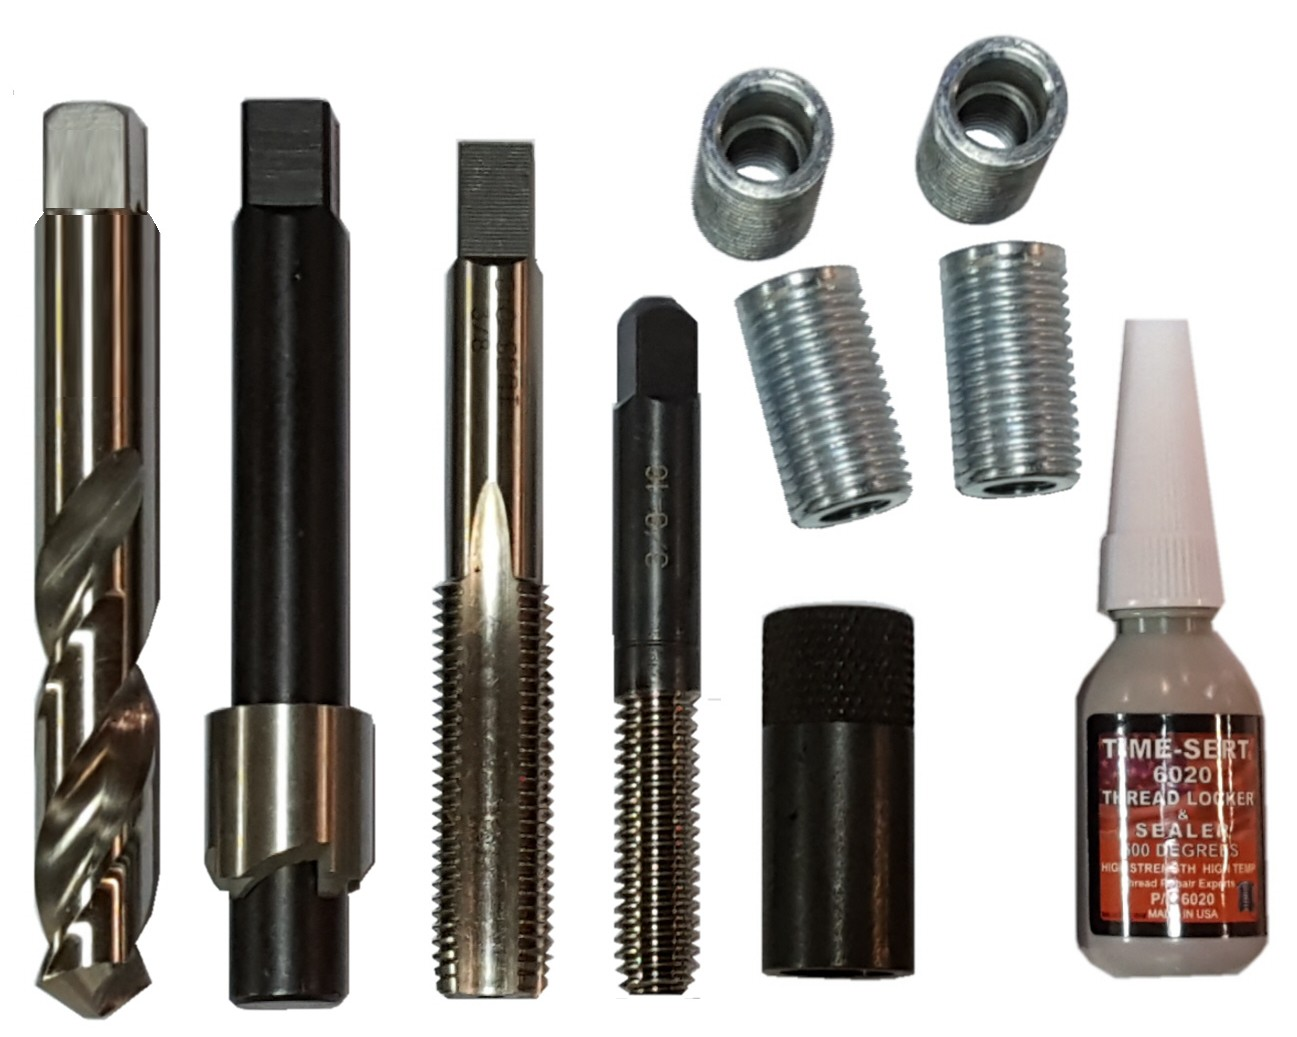 Time-Sert #1535 Starter Bolt Thread Repair Kit